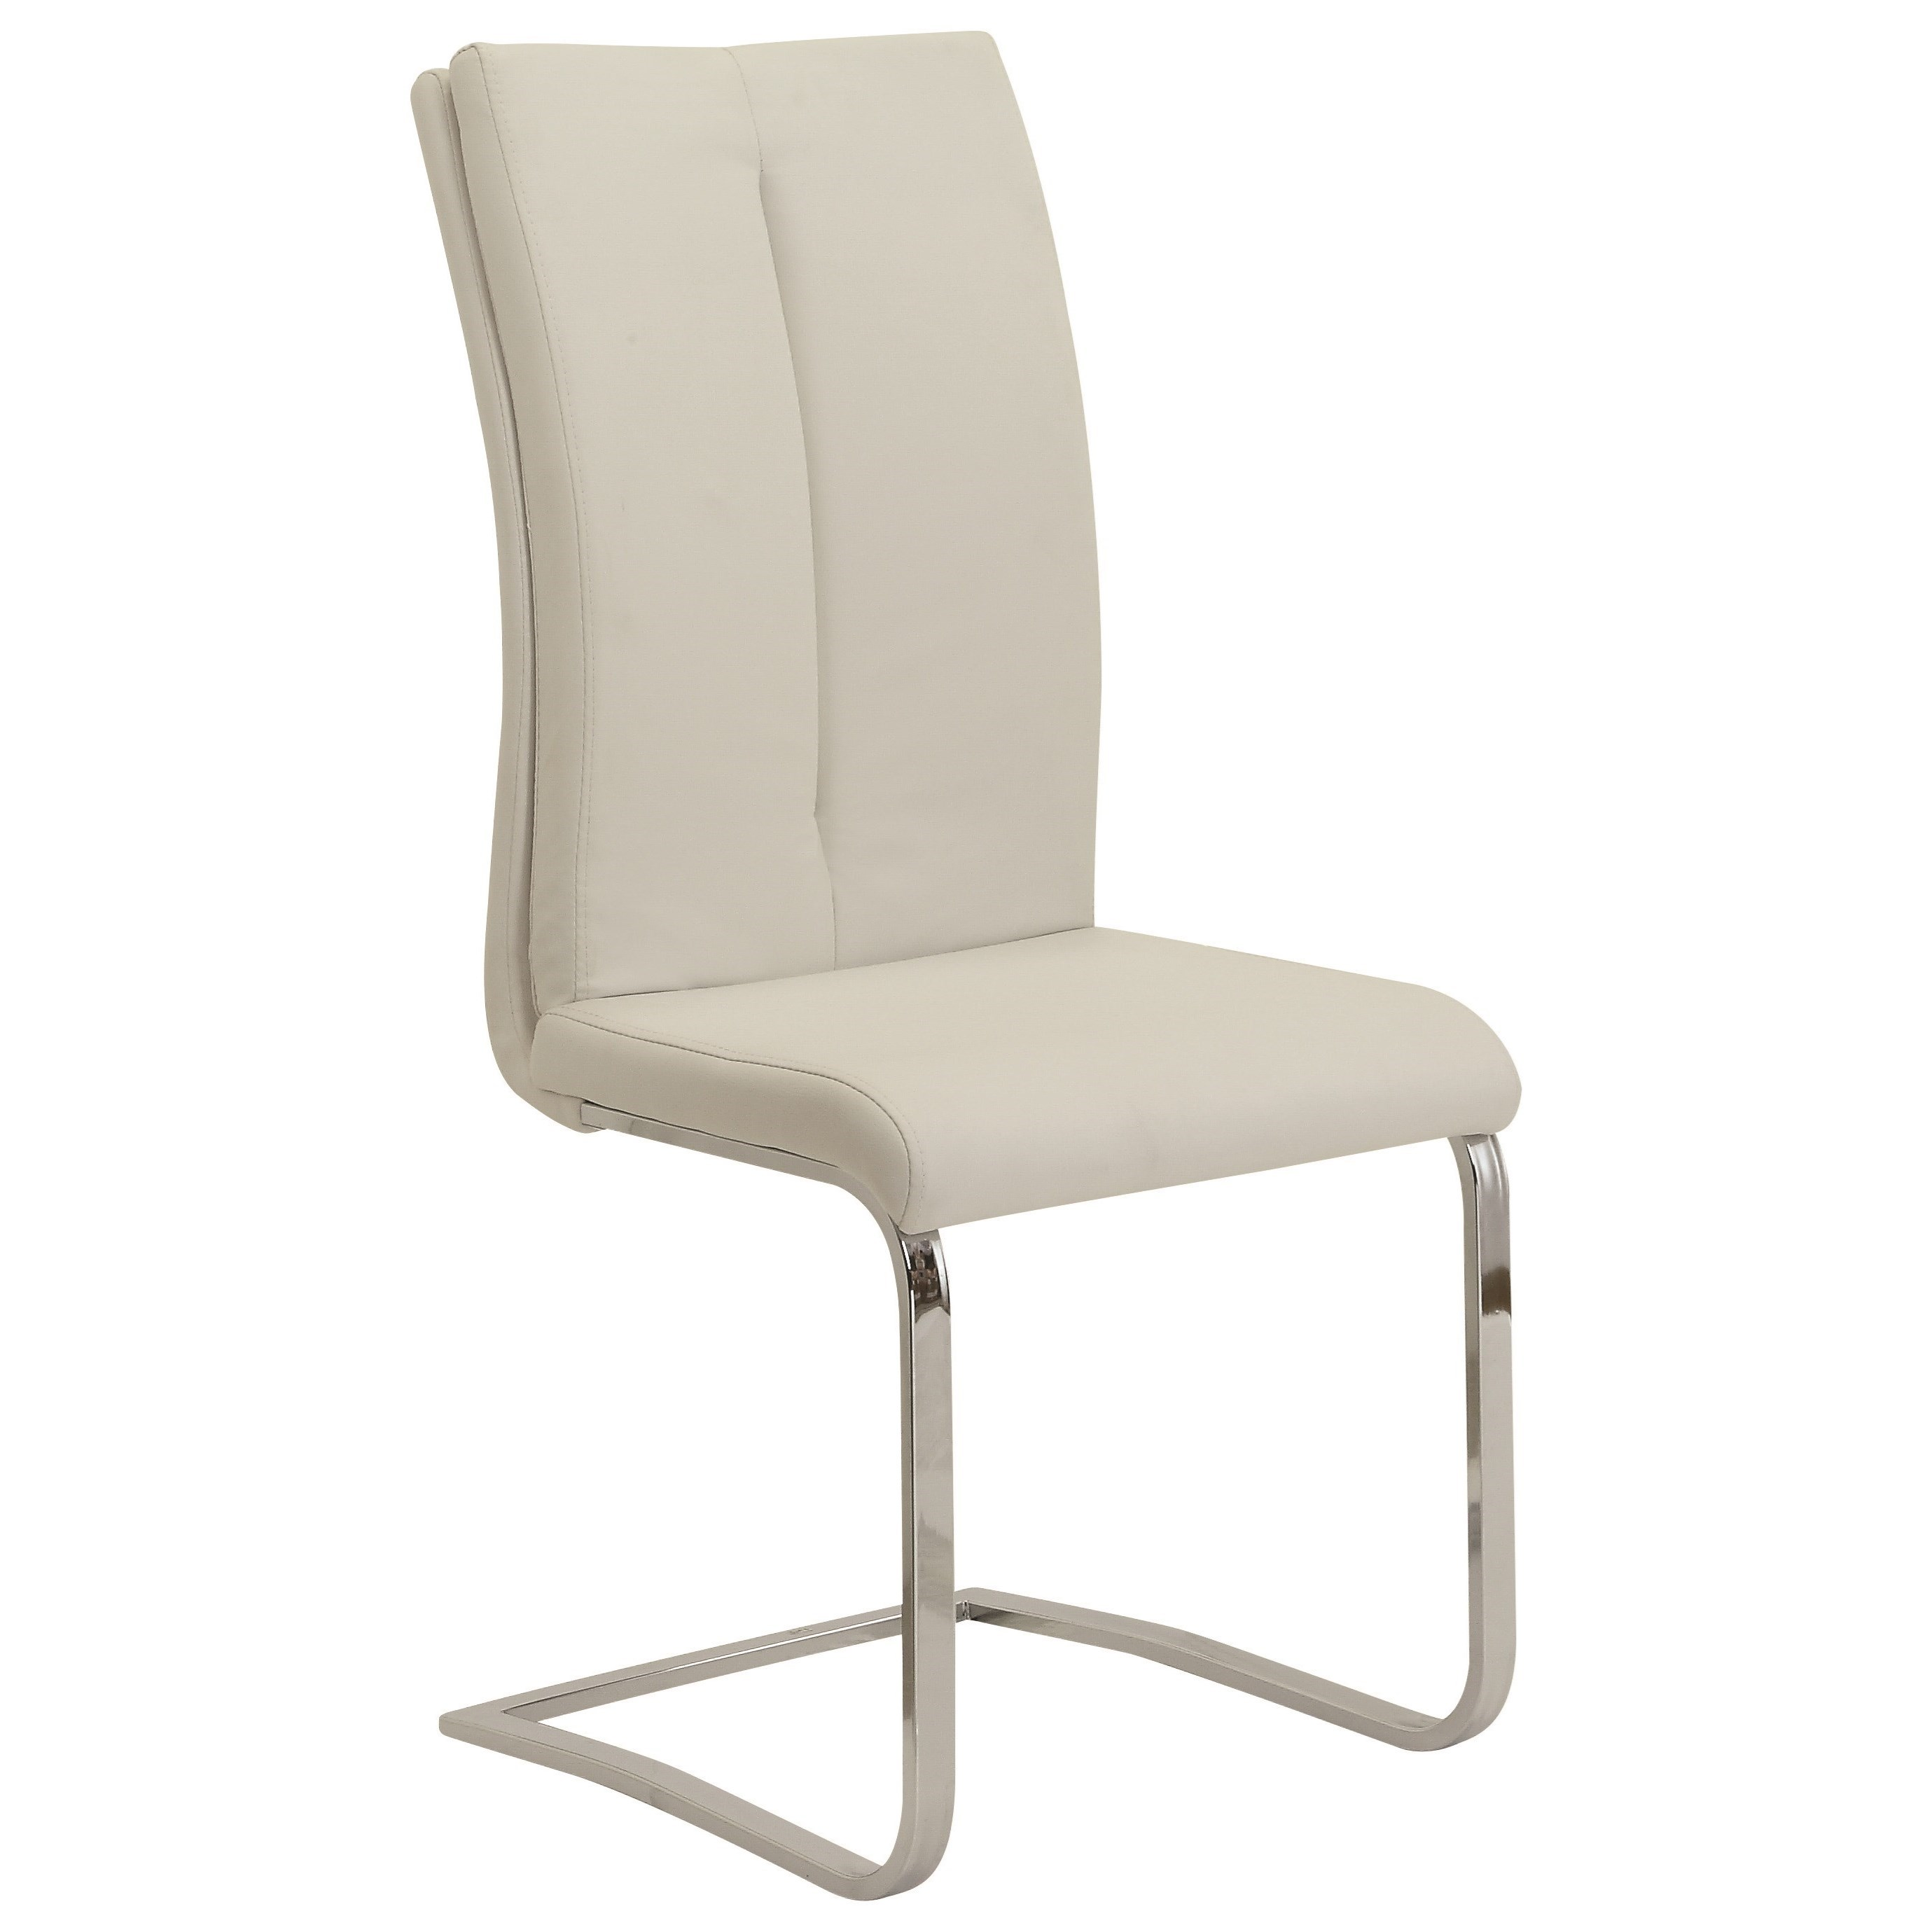 Coaster Dining Chairs and Bar Stools Dining Chair - Item Number: 102815